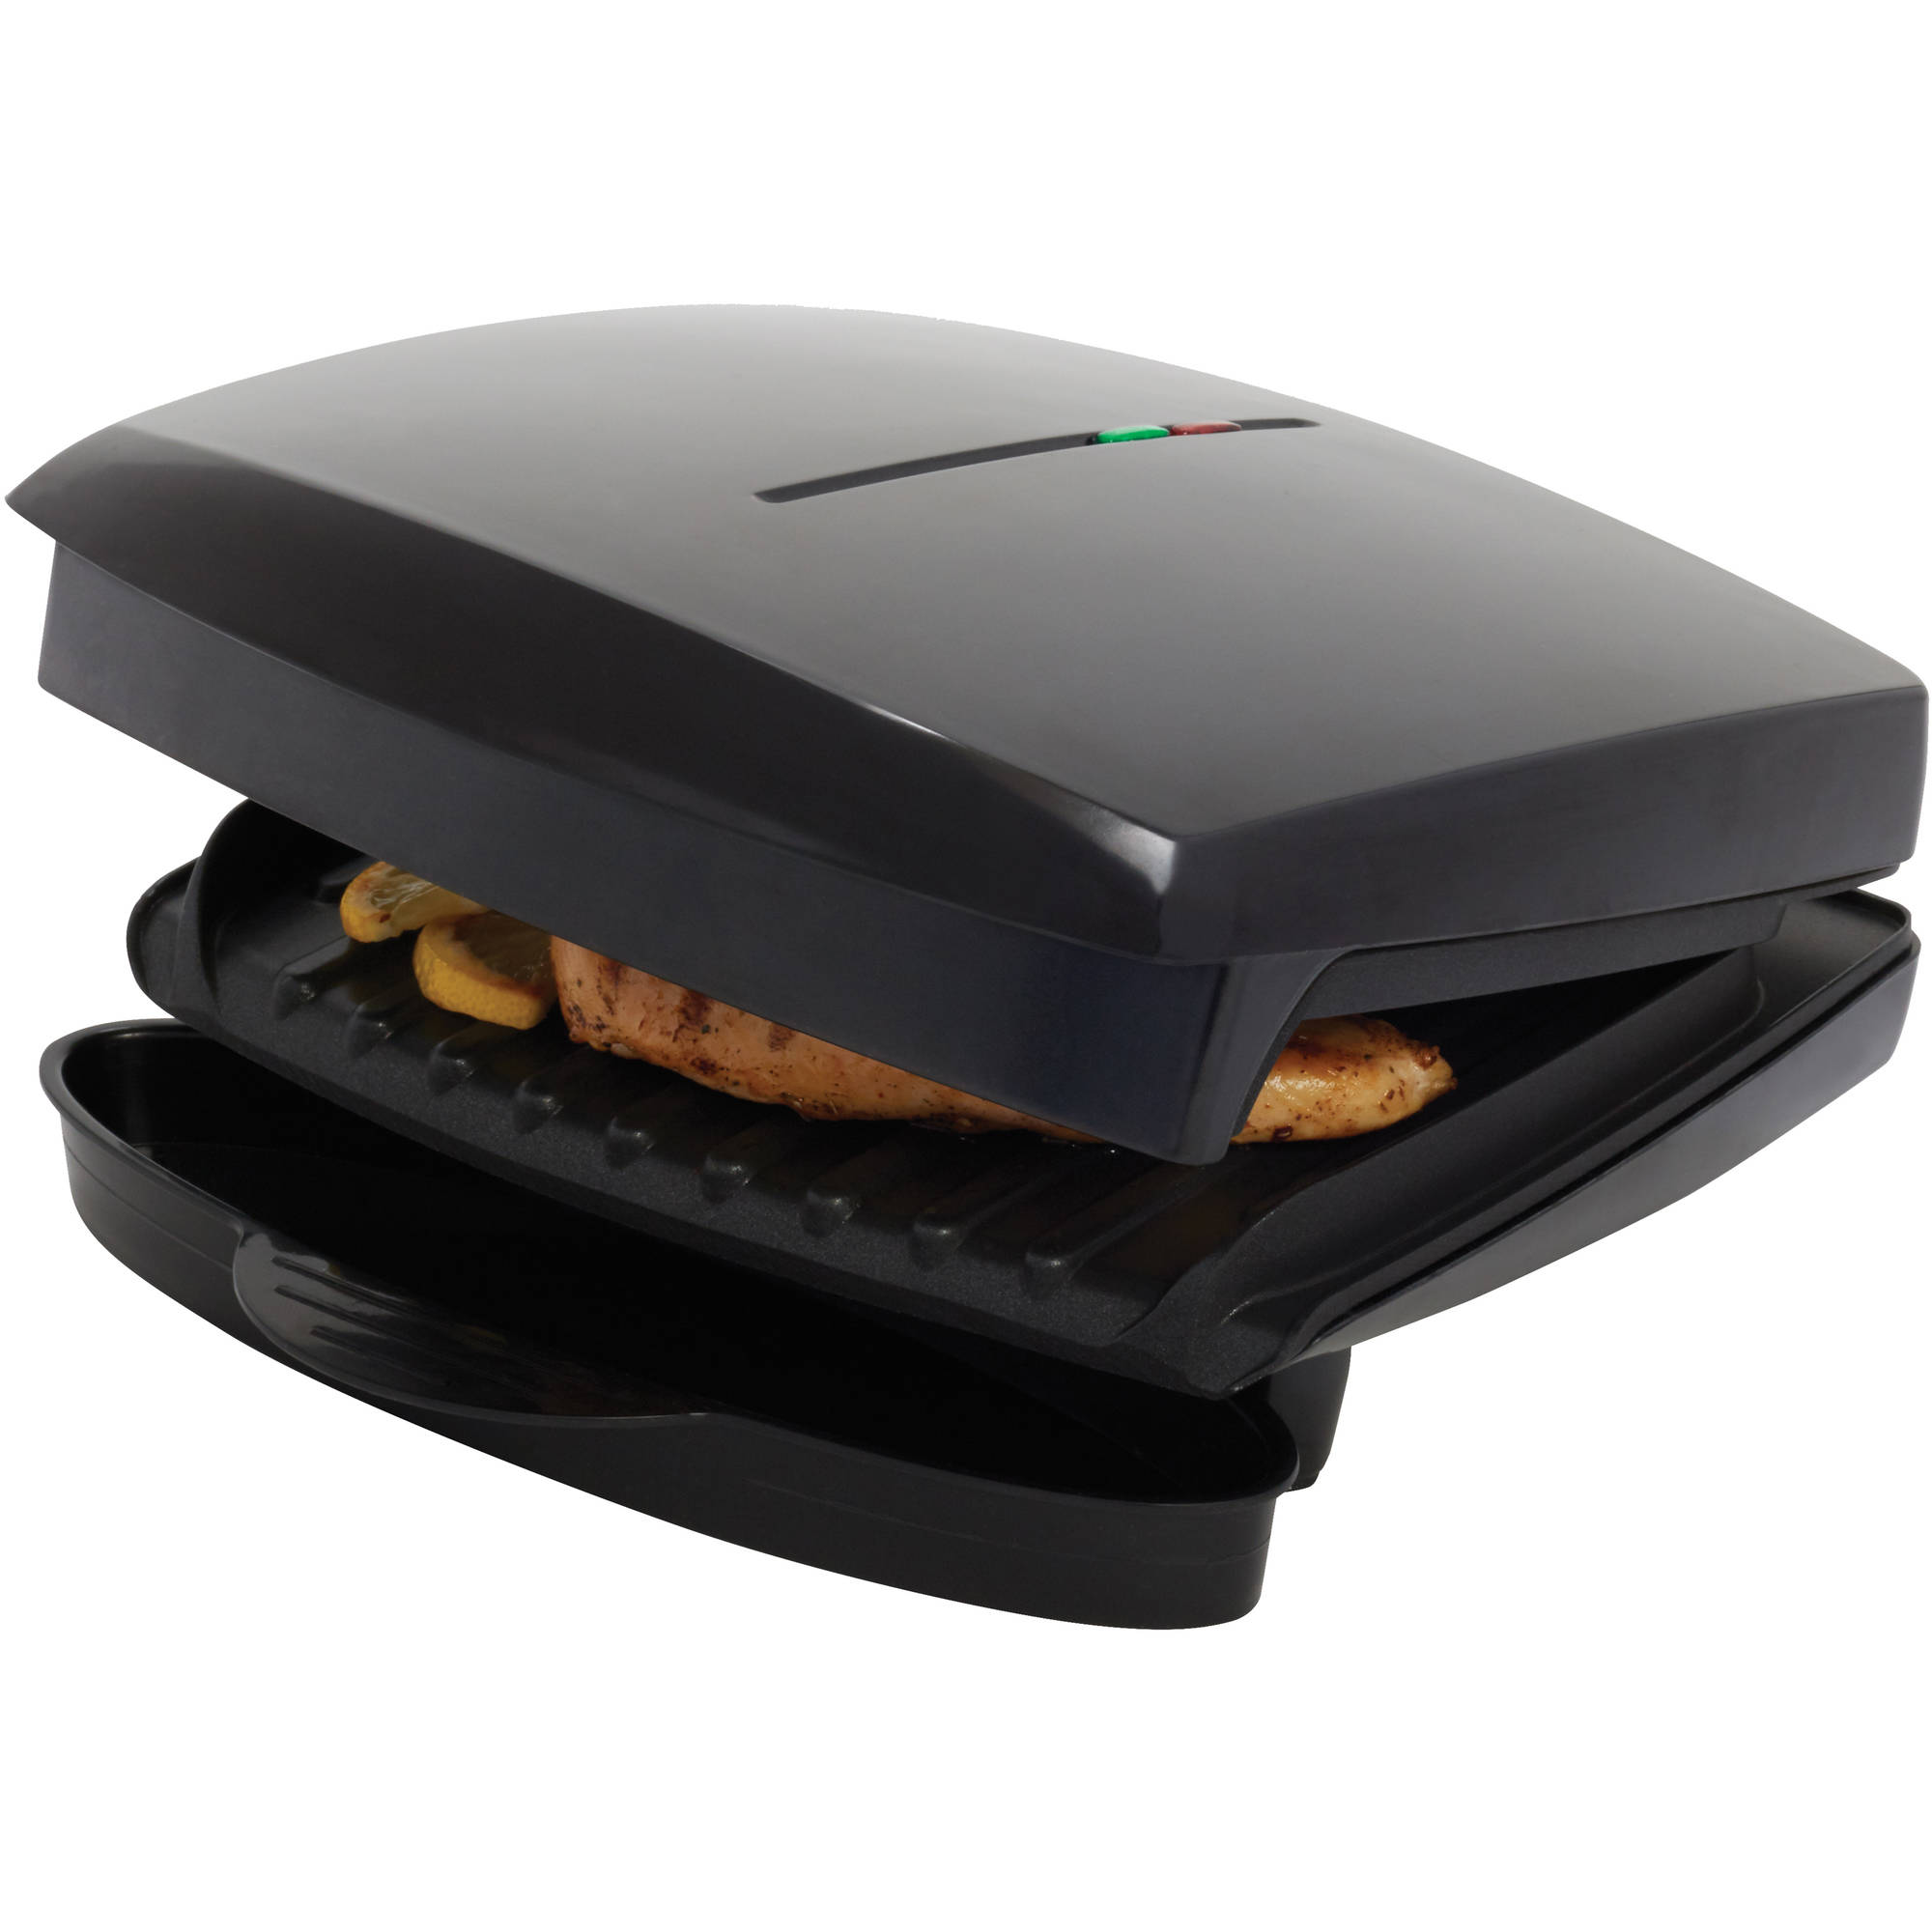 Mainstays Indoor Grill, Non-Stick, 45-sq in 2 Serving, Black